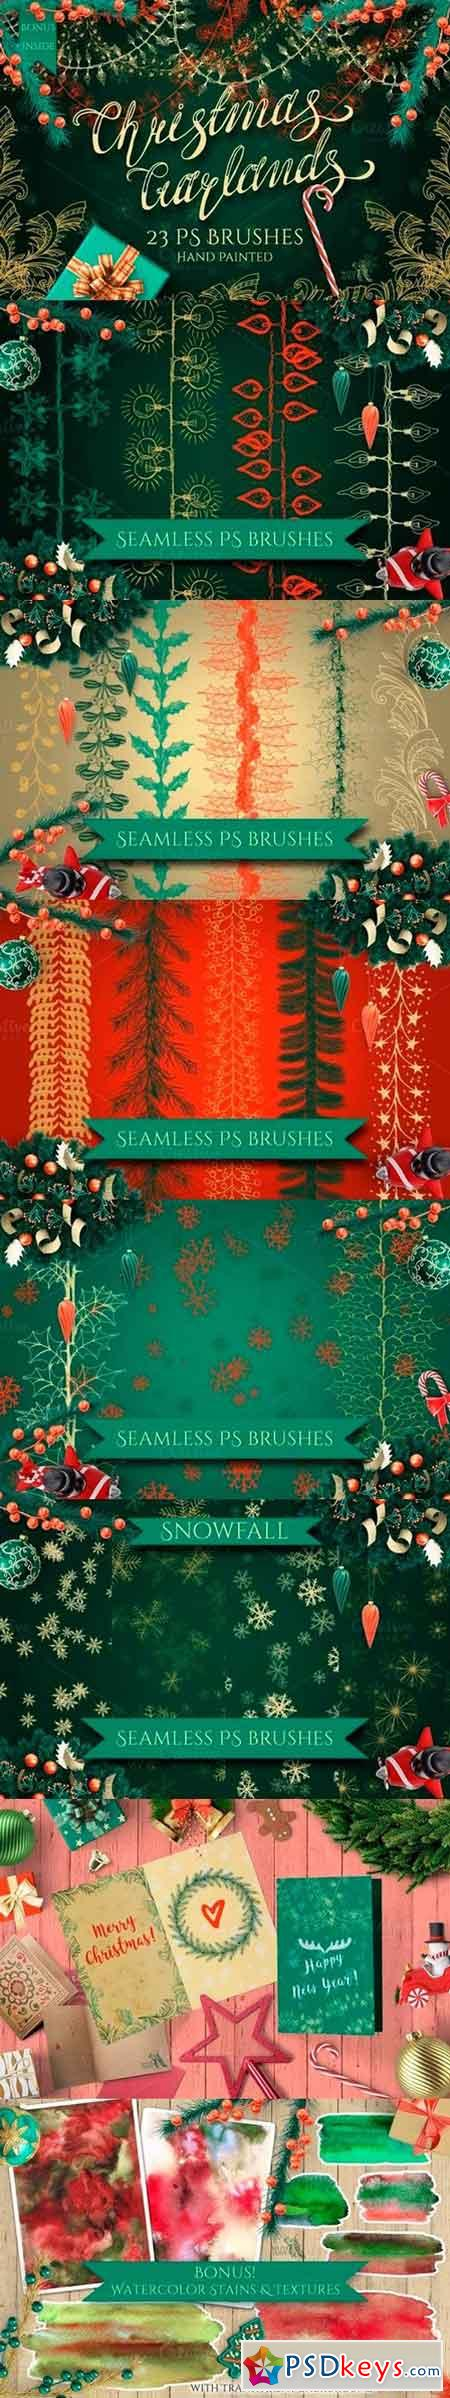 Christmas Garlands PS Brushes 1048896